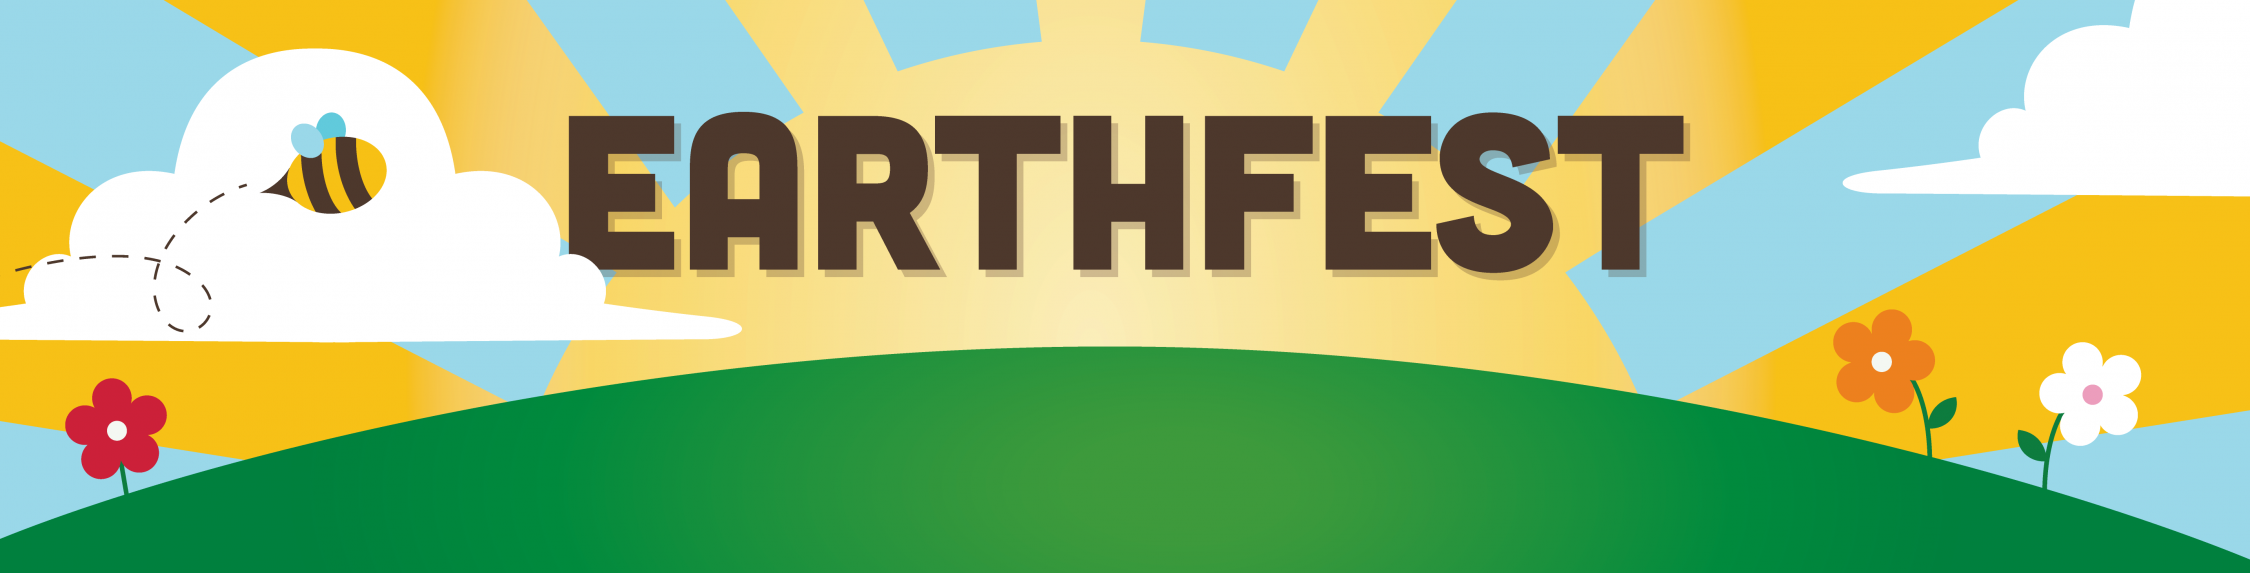 "Graphic of a sunset with text that says ""EarthFest""."